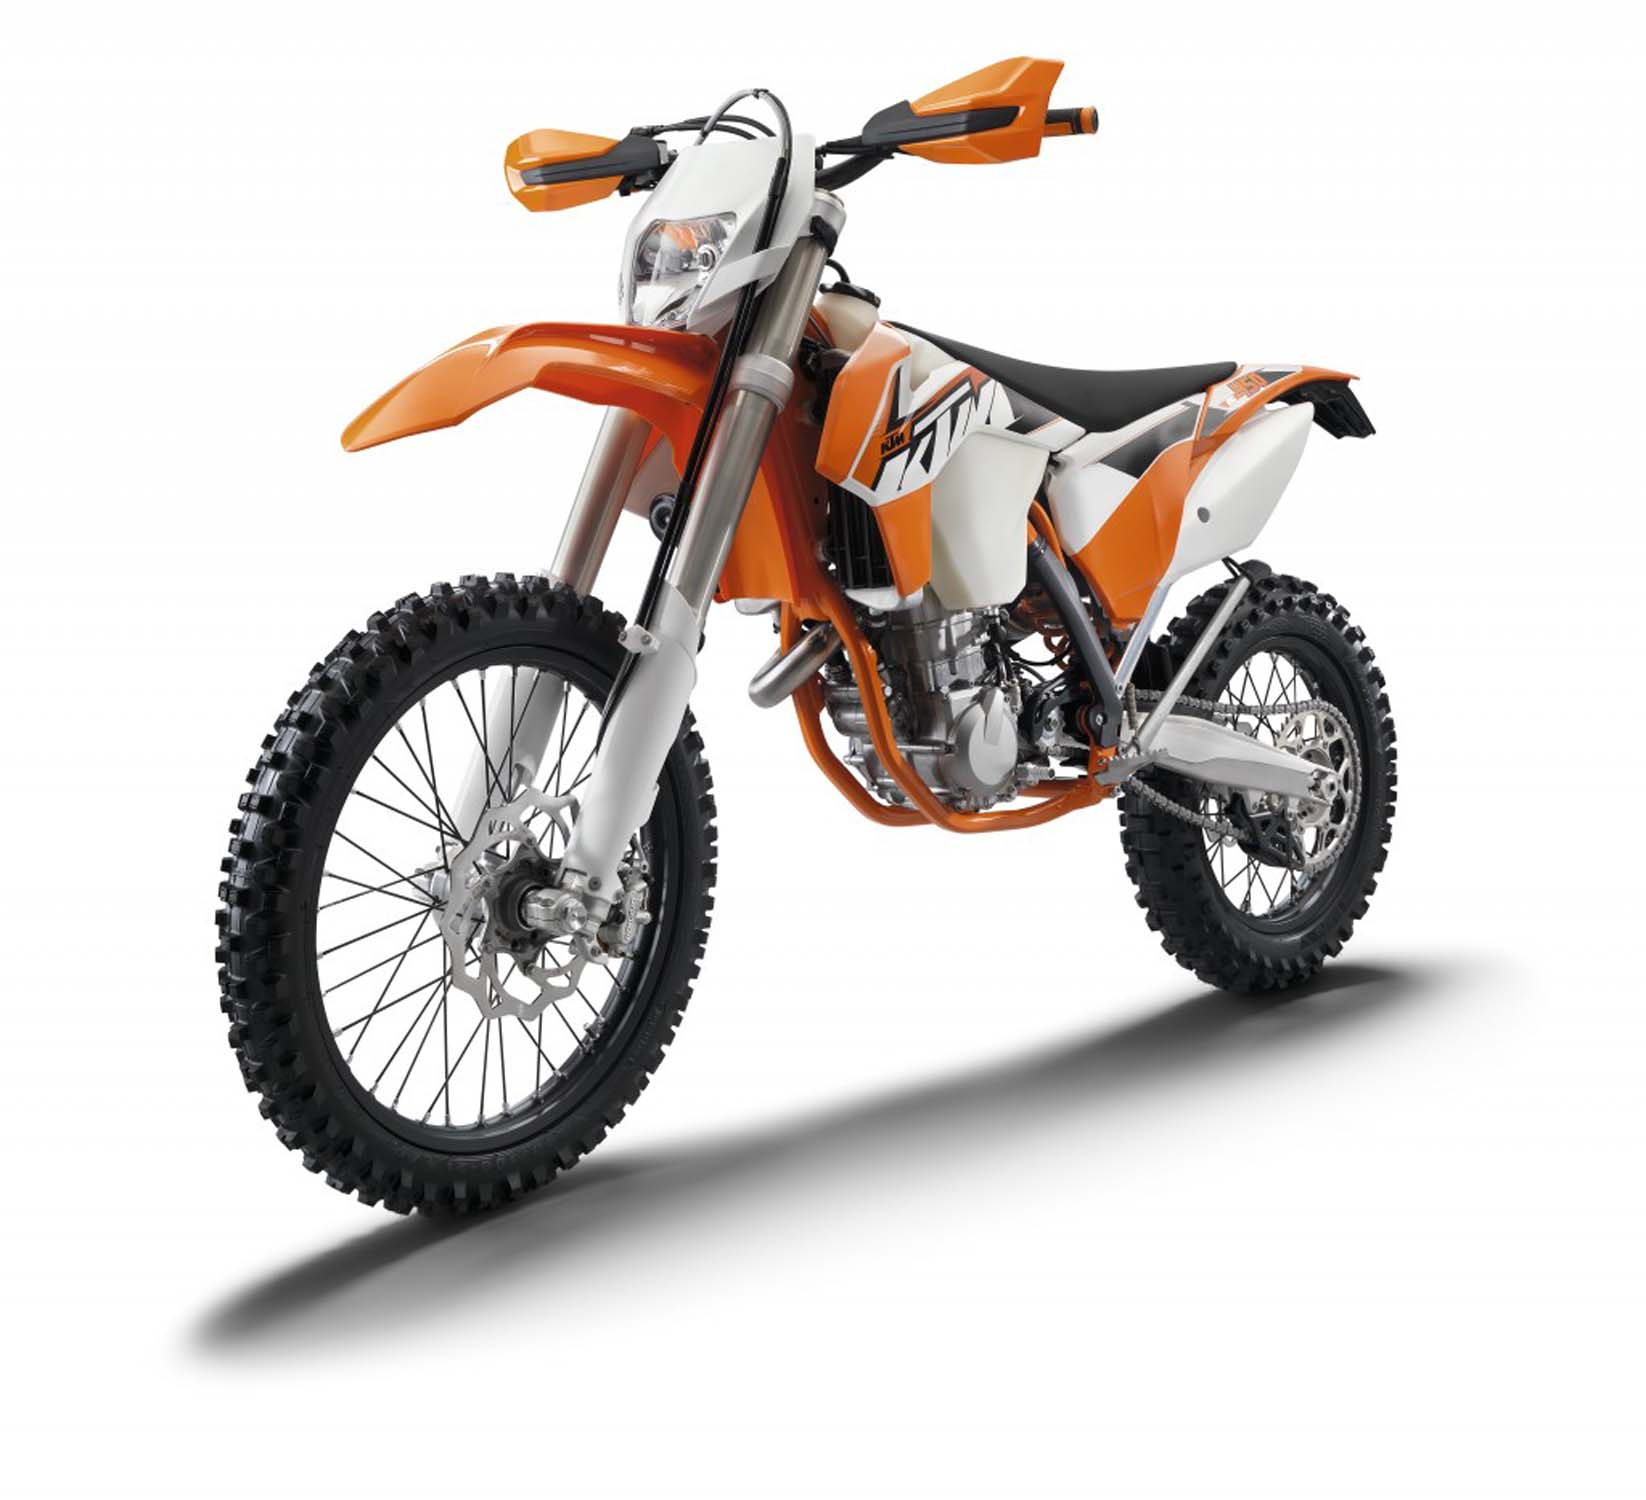 ktm 450 exc all technical data of the model 450 exc from ktm. Black Bedroom Furniture Sets. Home Design Ideas